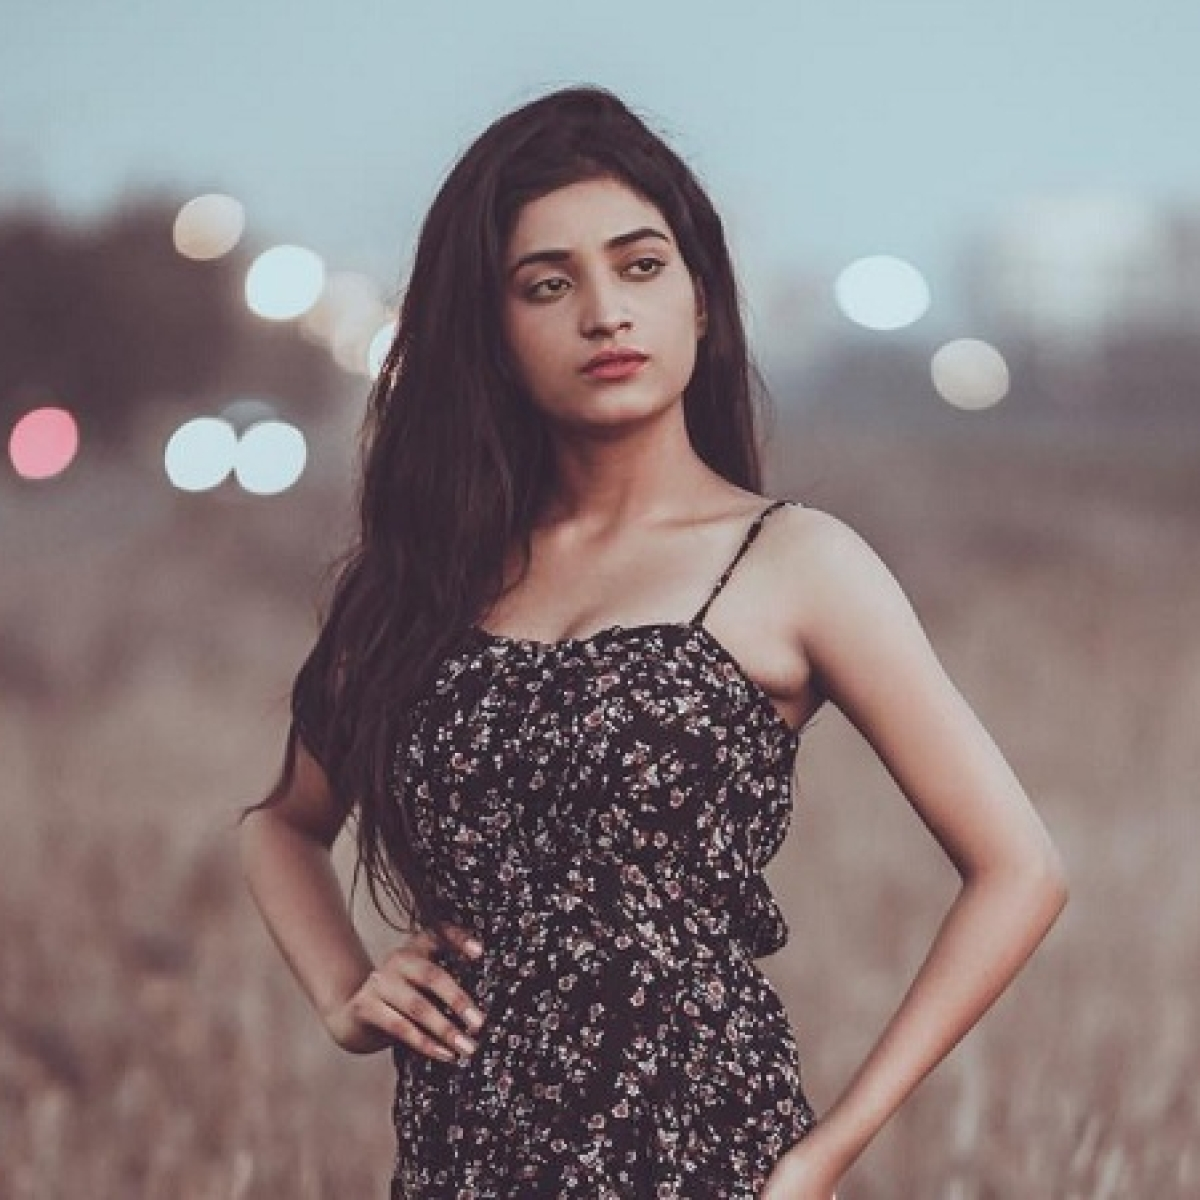 Manya Singh, Miss India 2020 runner-up, talks about overcoming obstacles with confidence